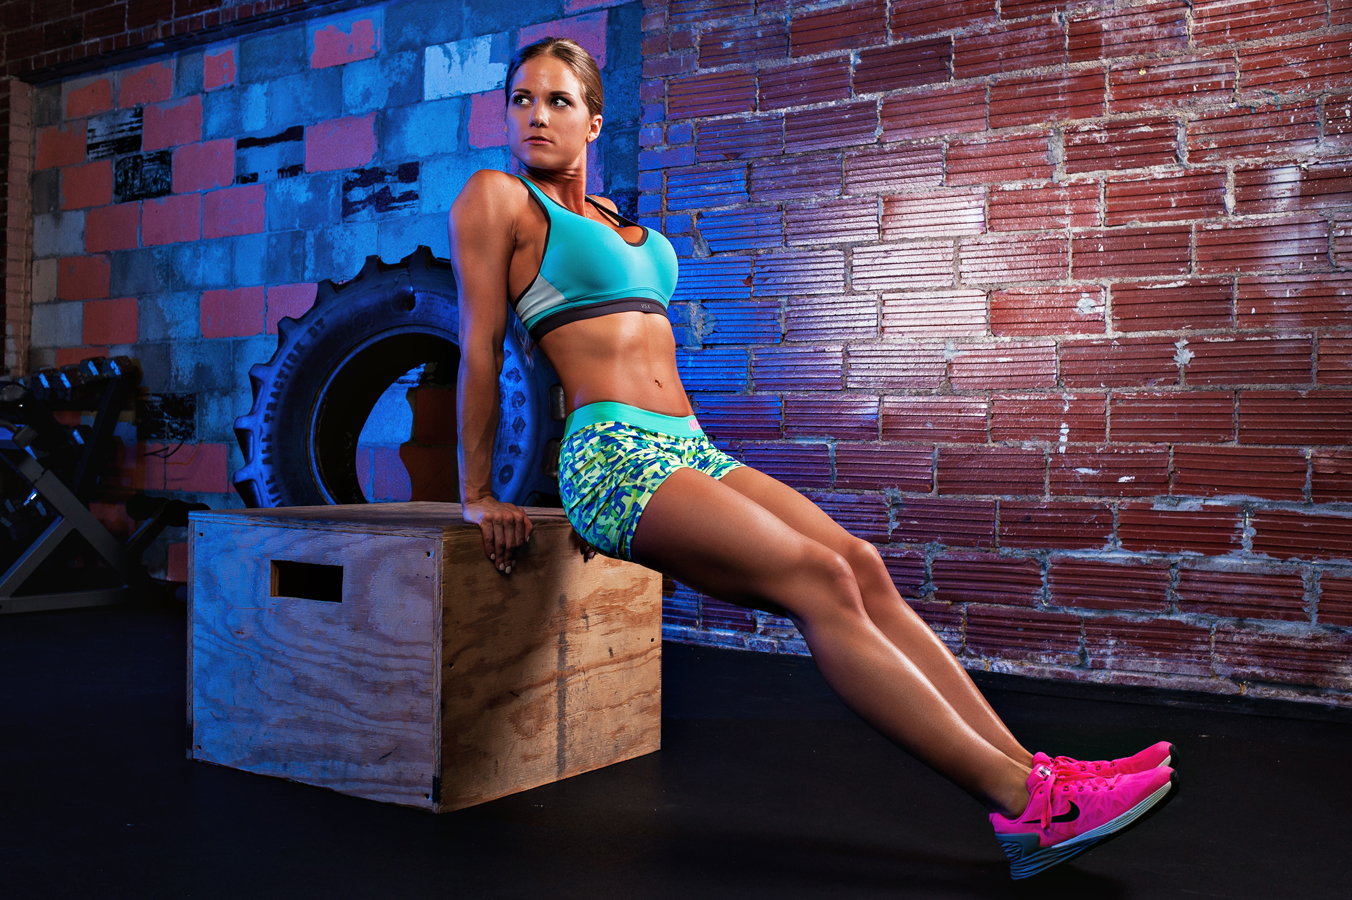 Kayla Fassio Fitness Model based in Oklahoma.   Fit women working out.  Fit women working out. Performing dips using a plyo box.  Kenneth M. Ruggiano is a portrait photographer living in Tulsa, Oklahoma